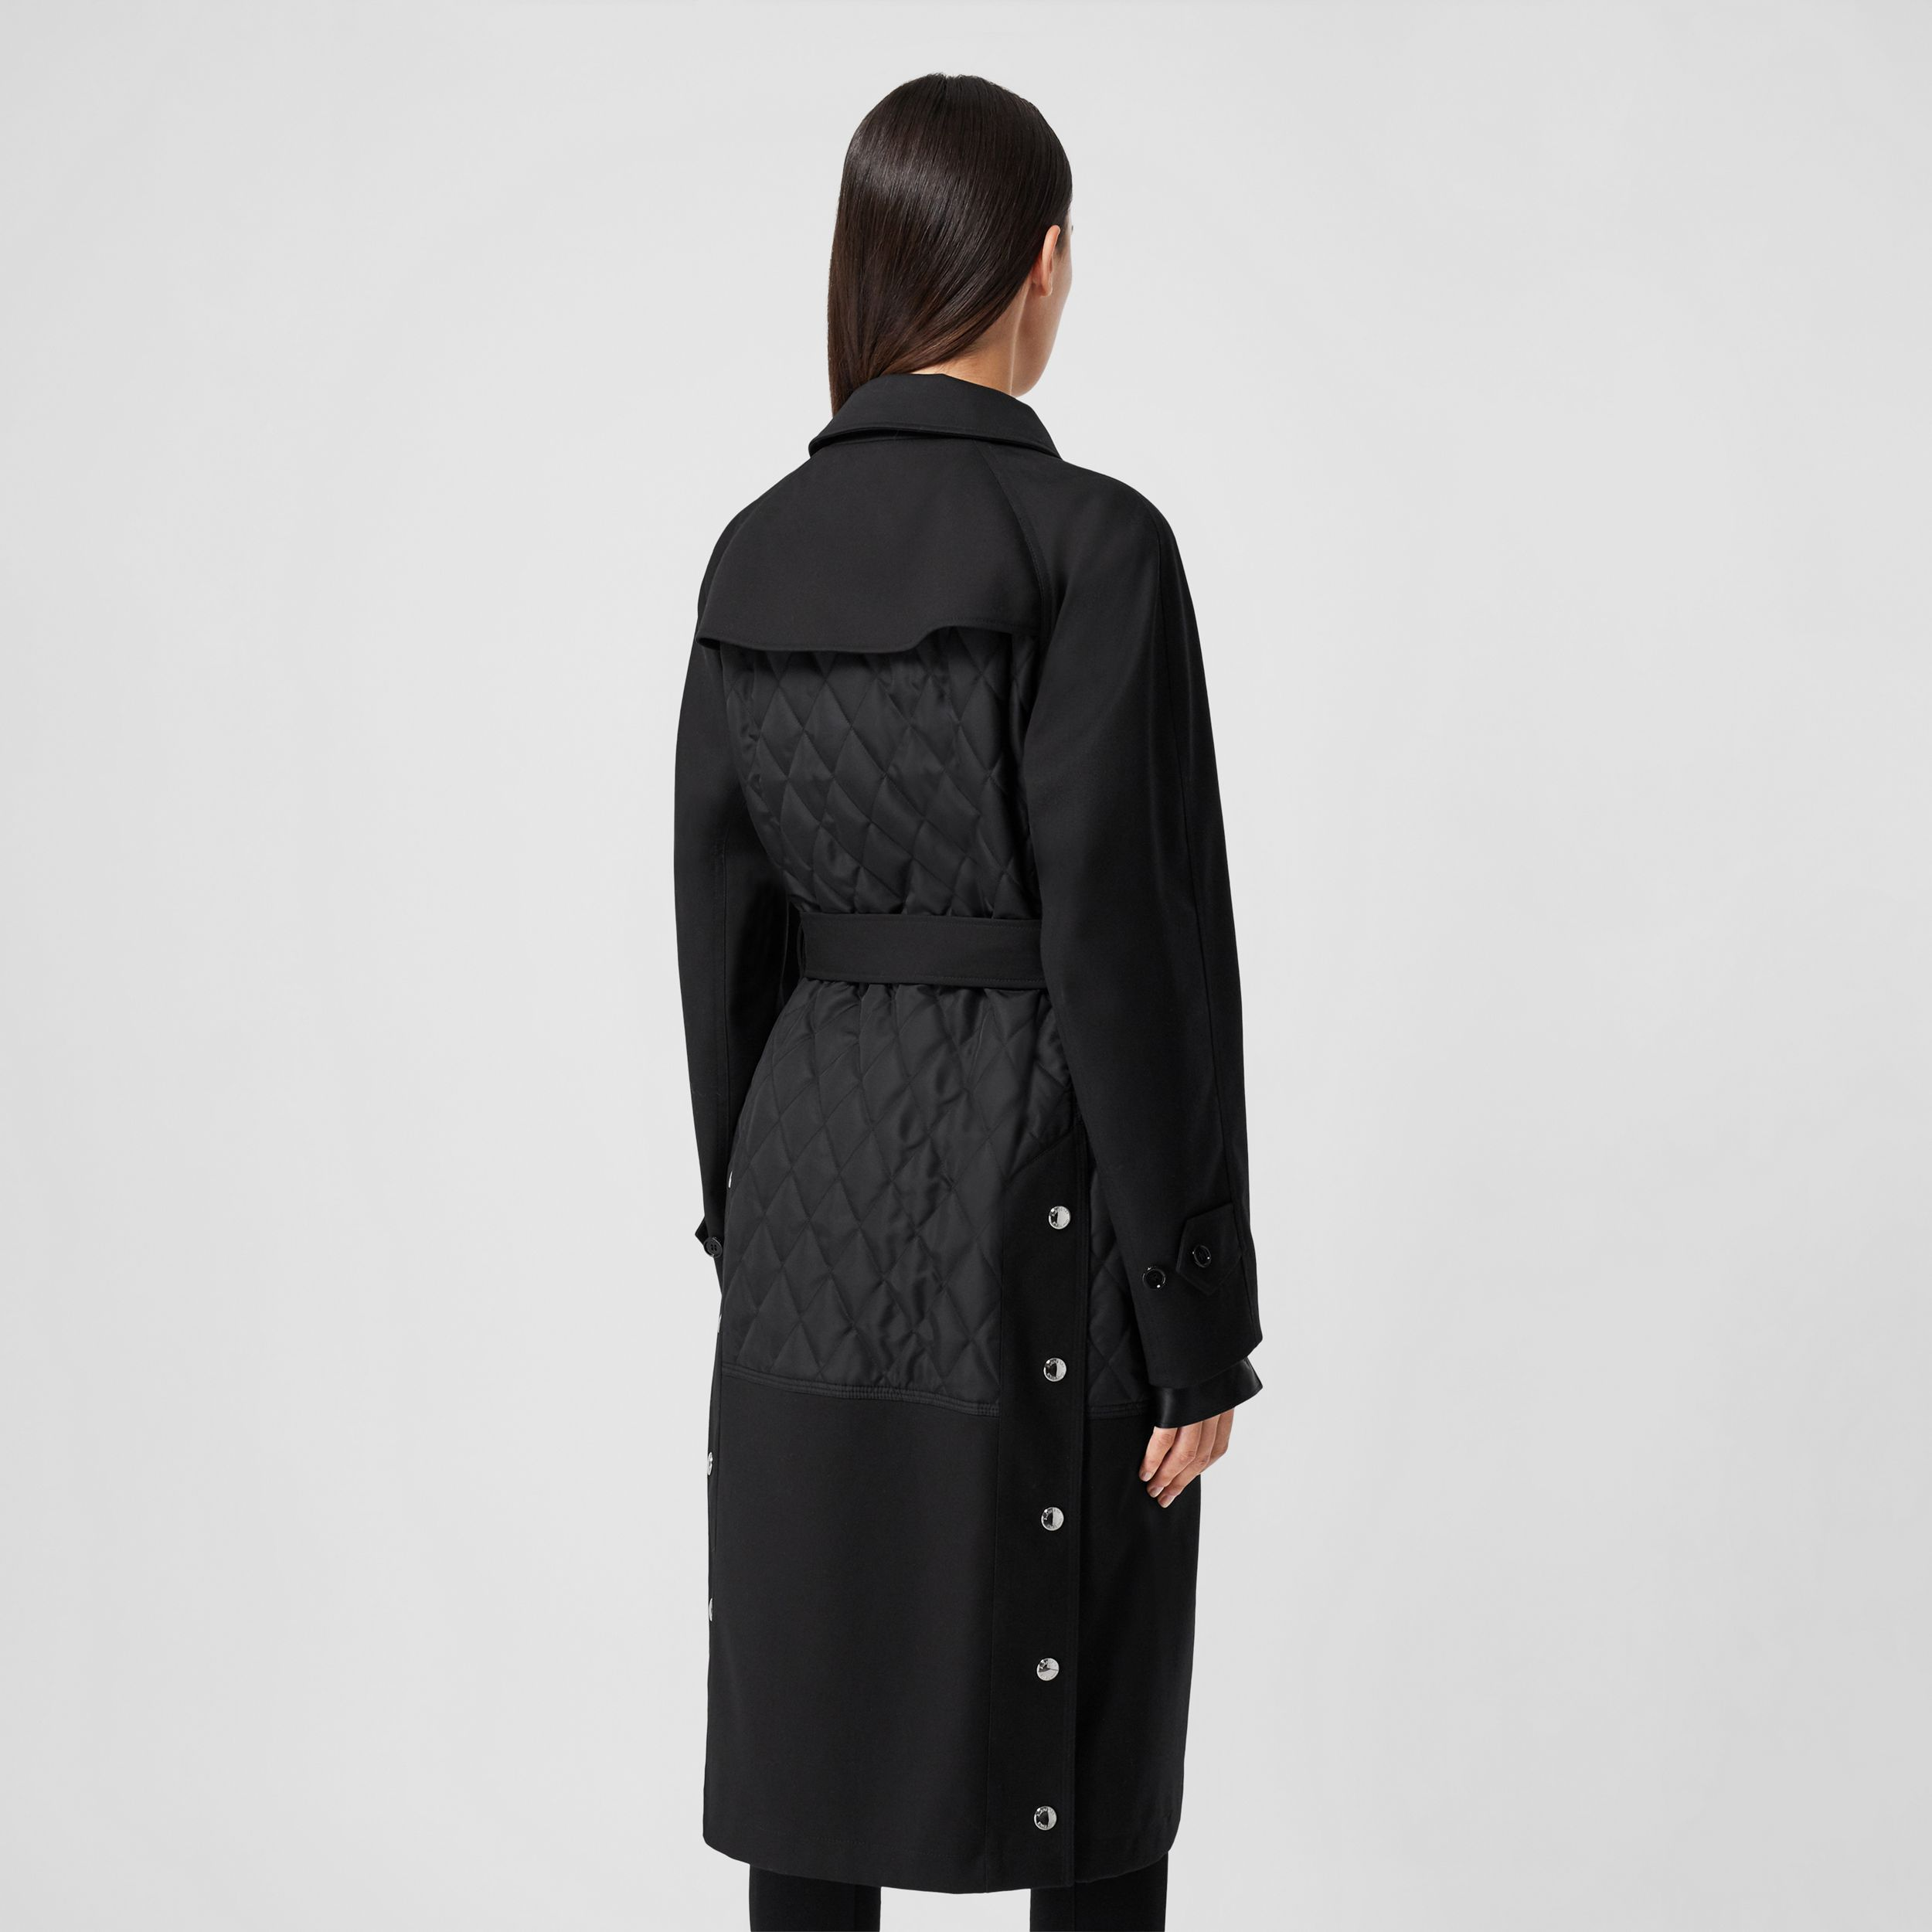 Diamond Quilted Panel Cotton Gabardine Car Coat in Black - Women | Burberry Australia - 3